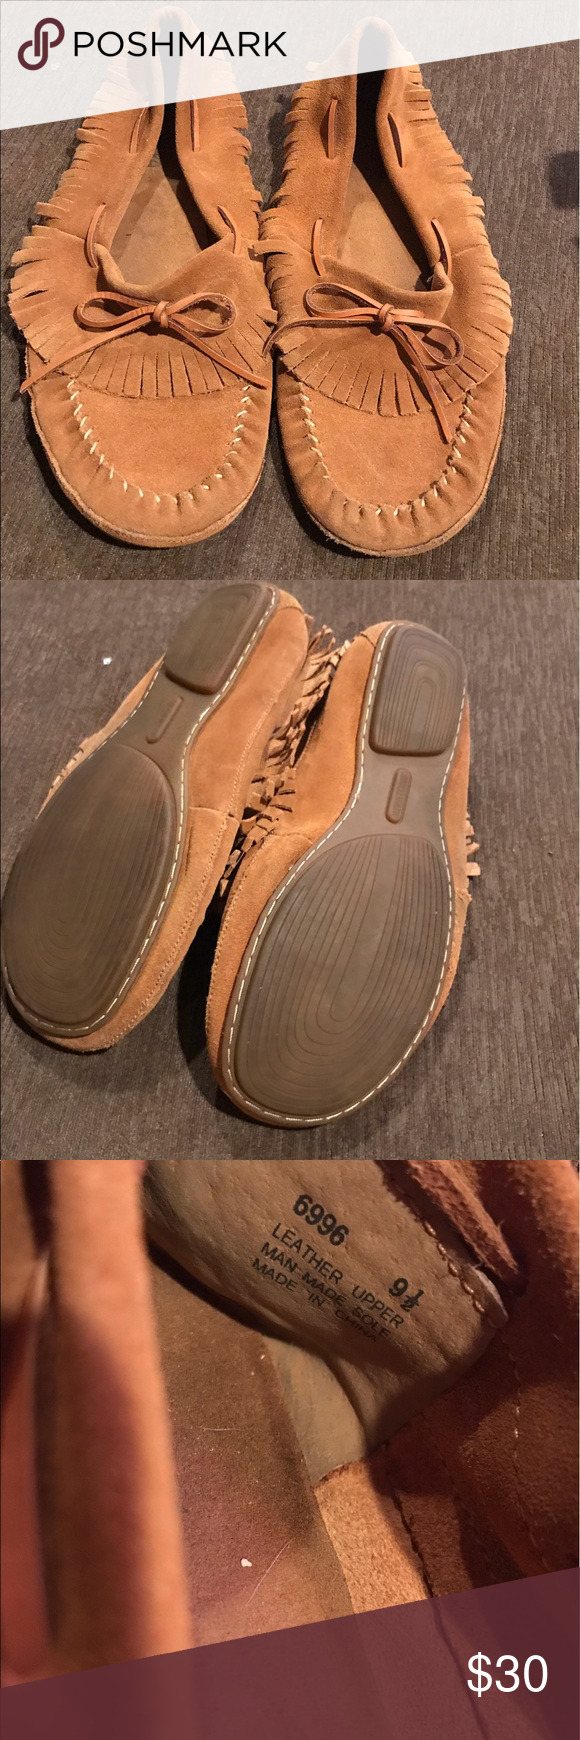 Minnetonka fringe moccasins Minnetonka fringe moccasins in good condition Minnetonka Shoes Moccasins